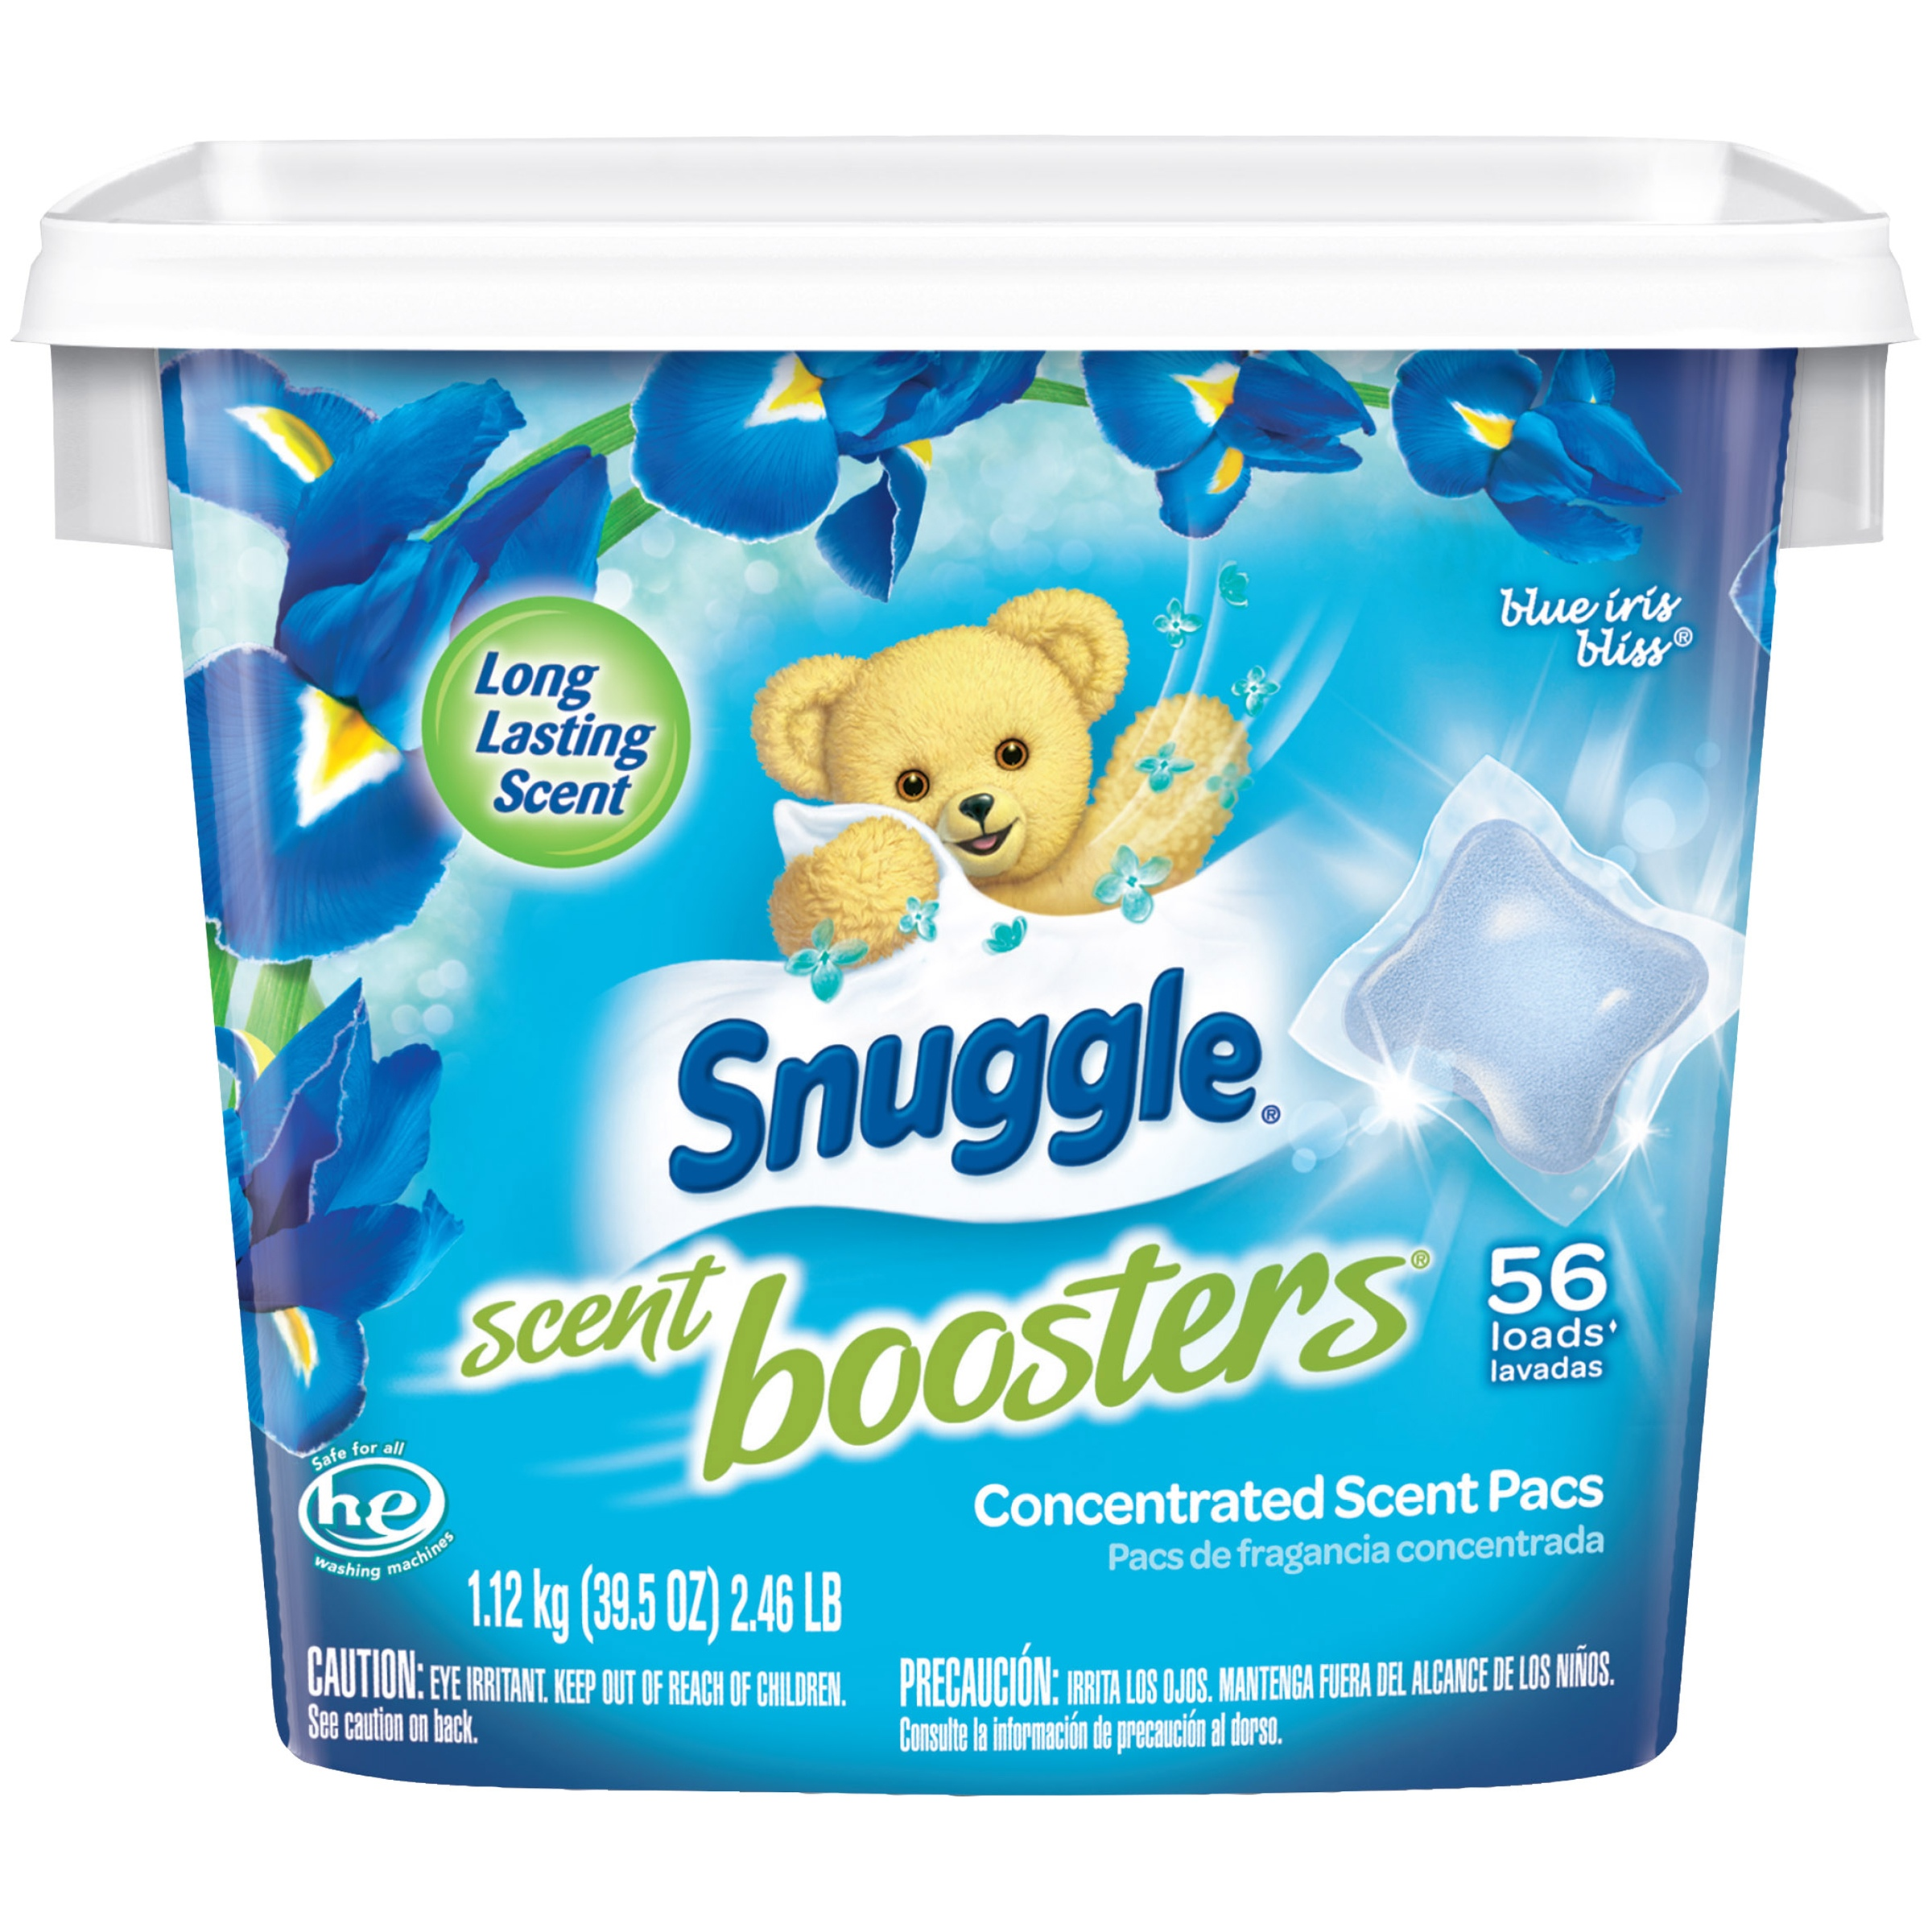 Snuggle Concentrated Pacs Scent Boosters, Blue Iris Bliss, 56 Count